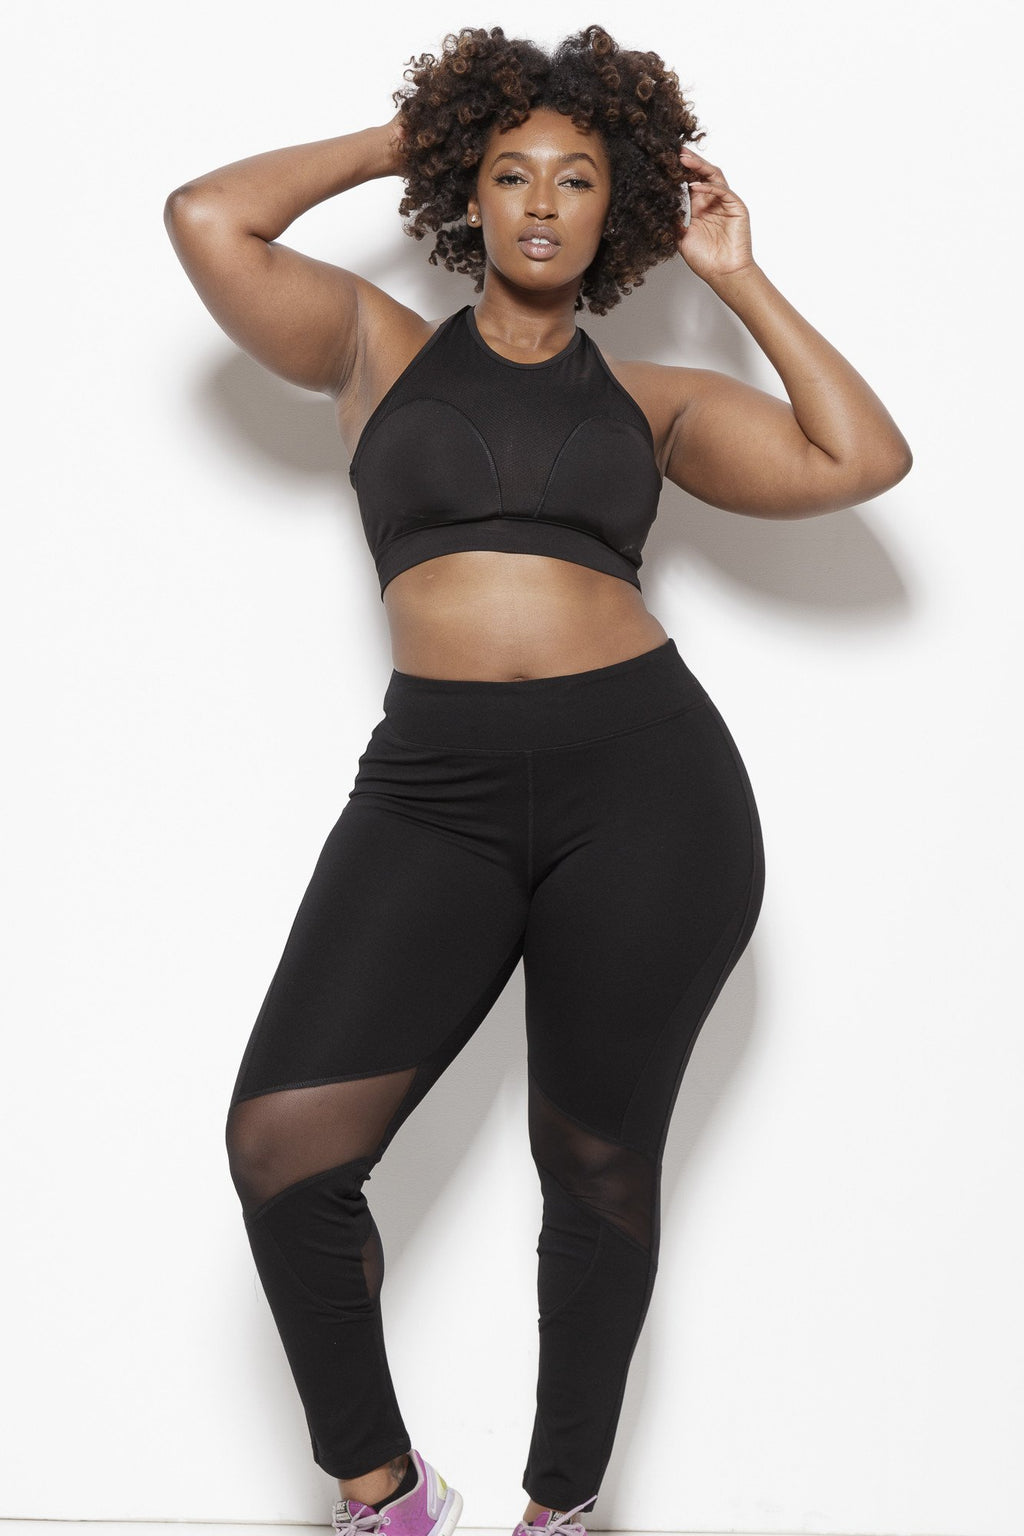 Demi Performance Leggings - Plus Clothing Fair Shade 1X Black